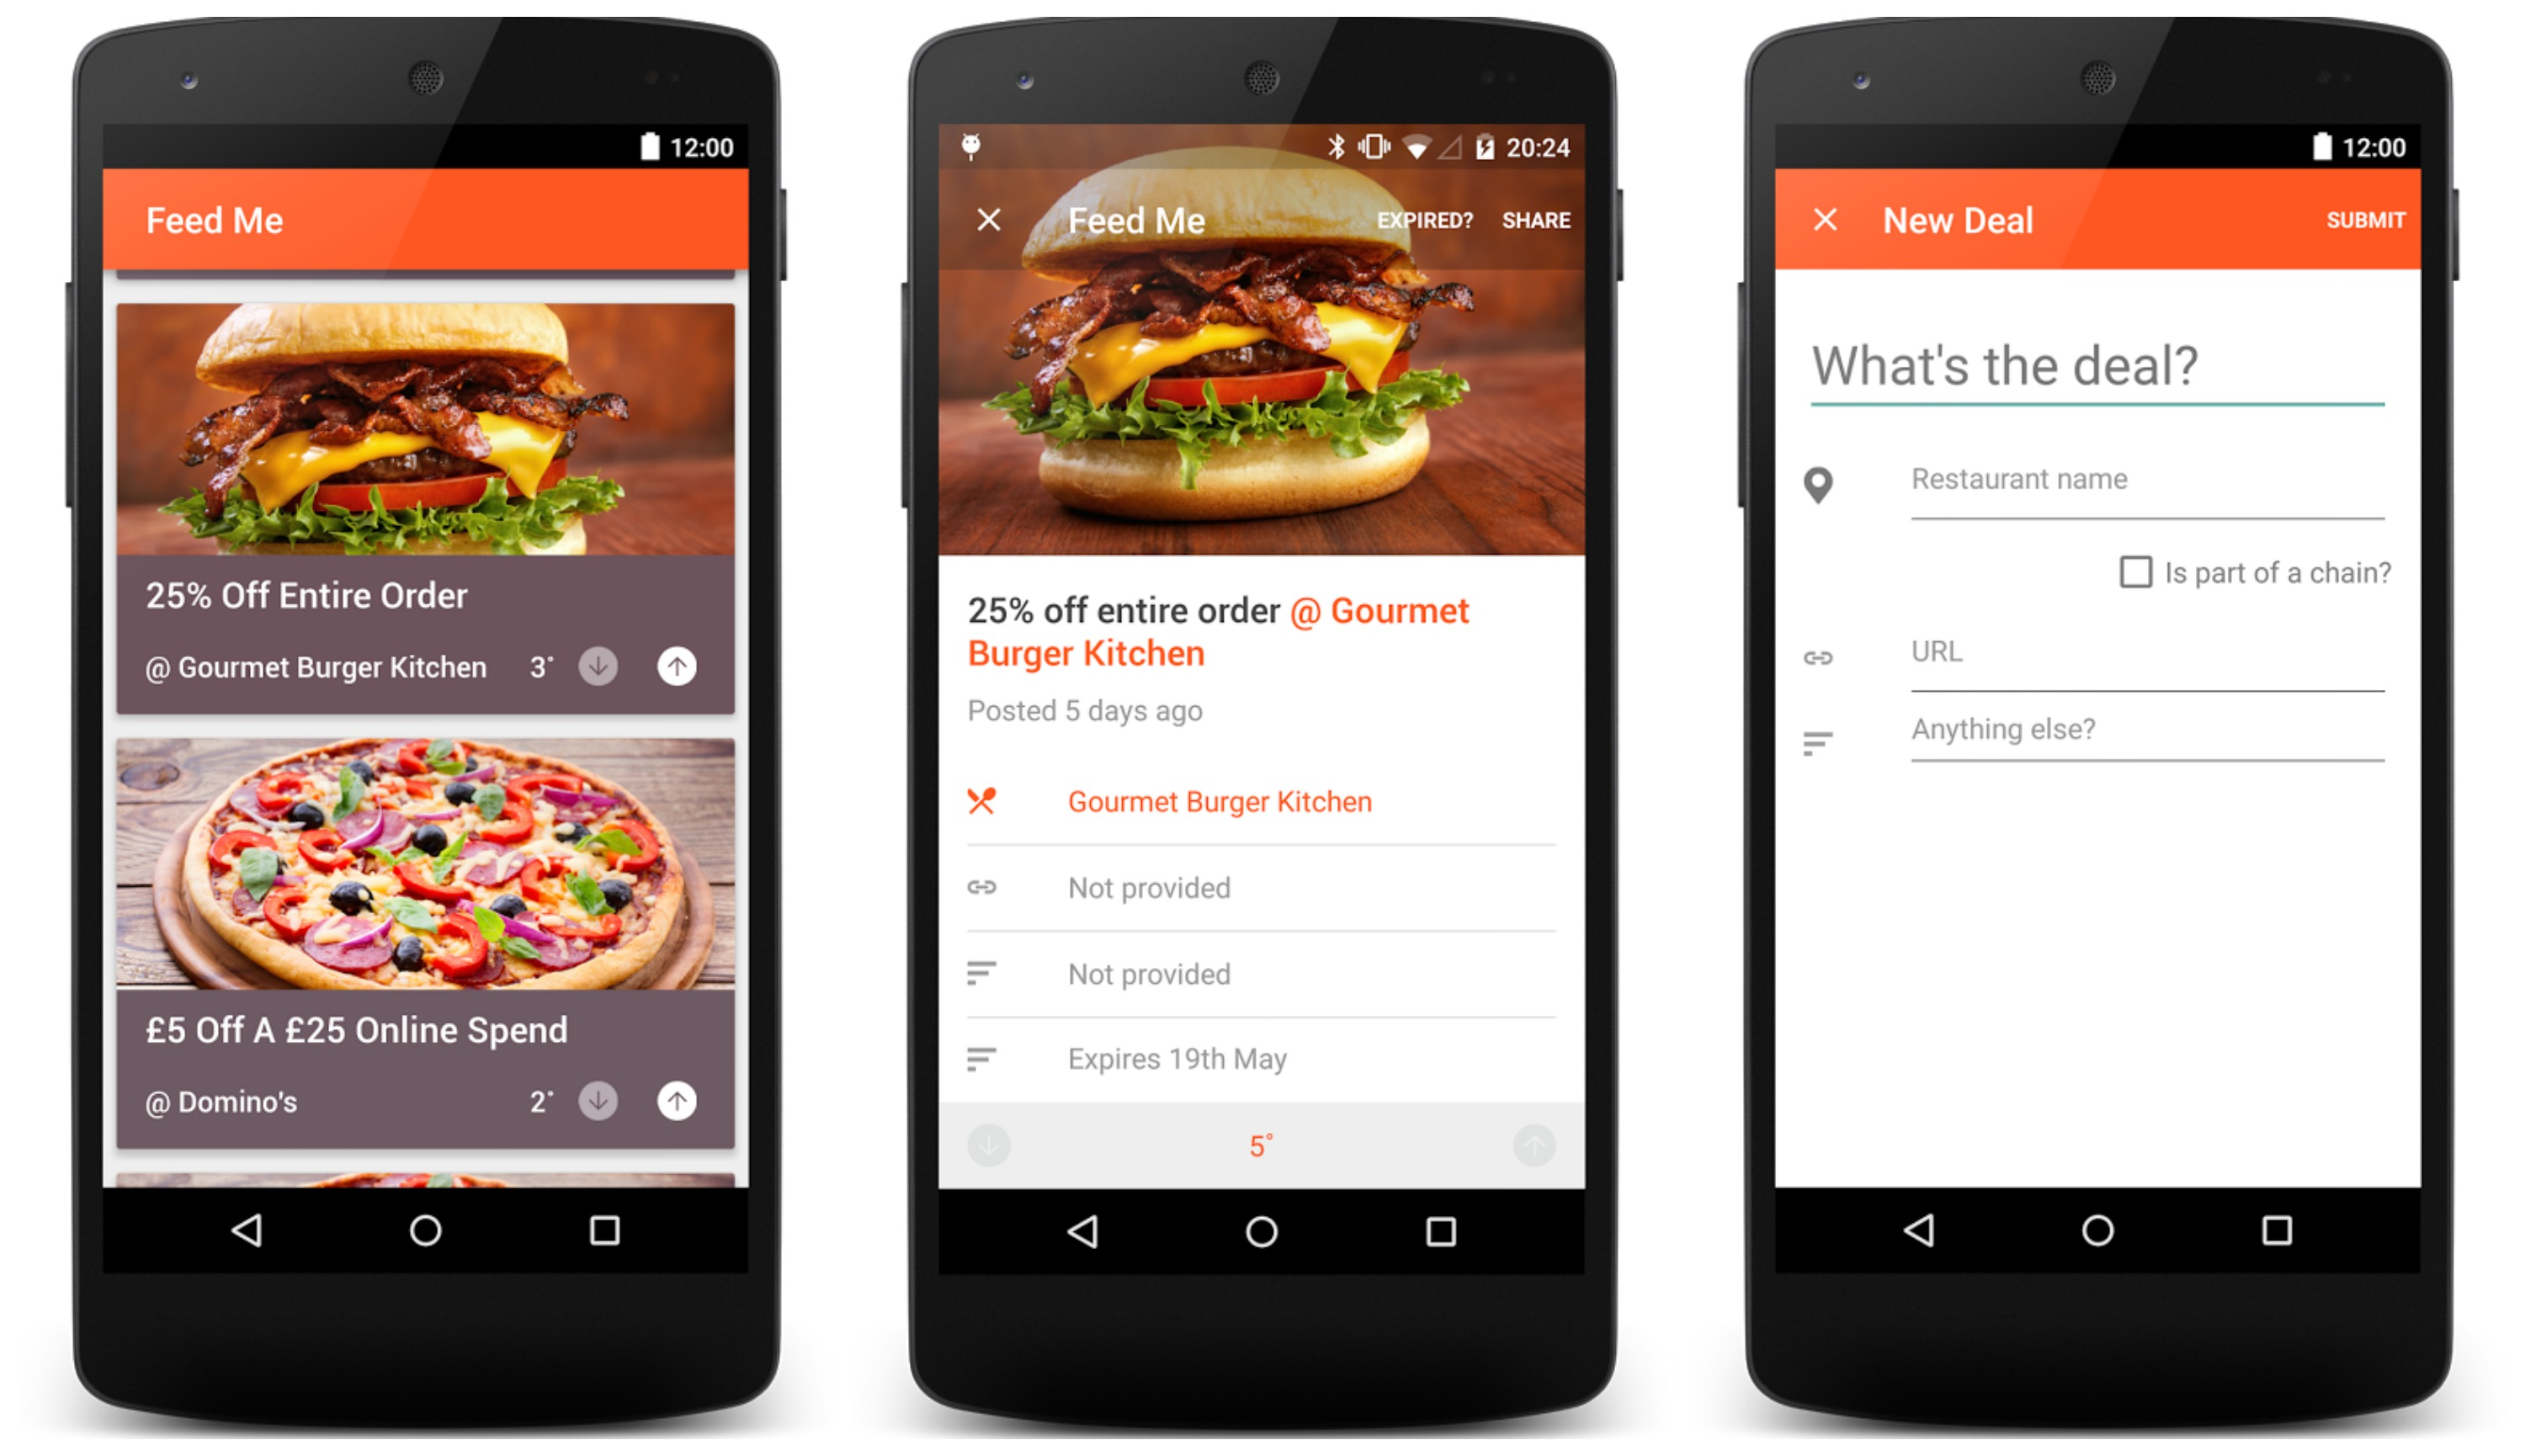 Feedme Lets You Find The Hottest Restaurant Deals In Your